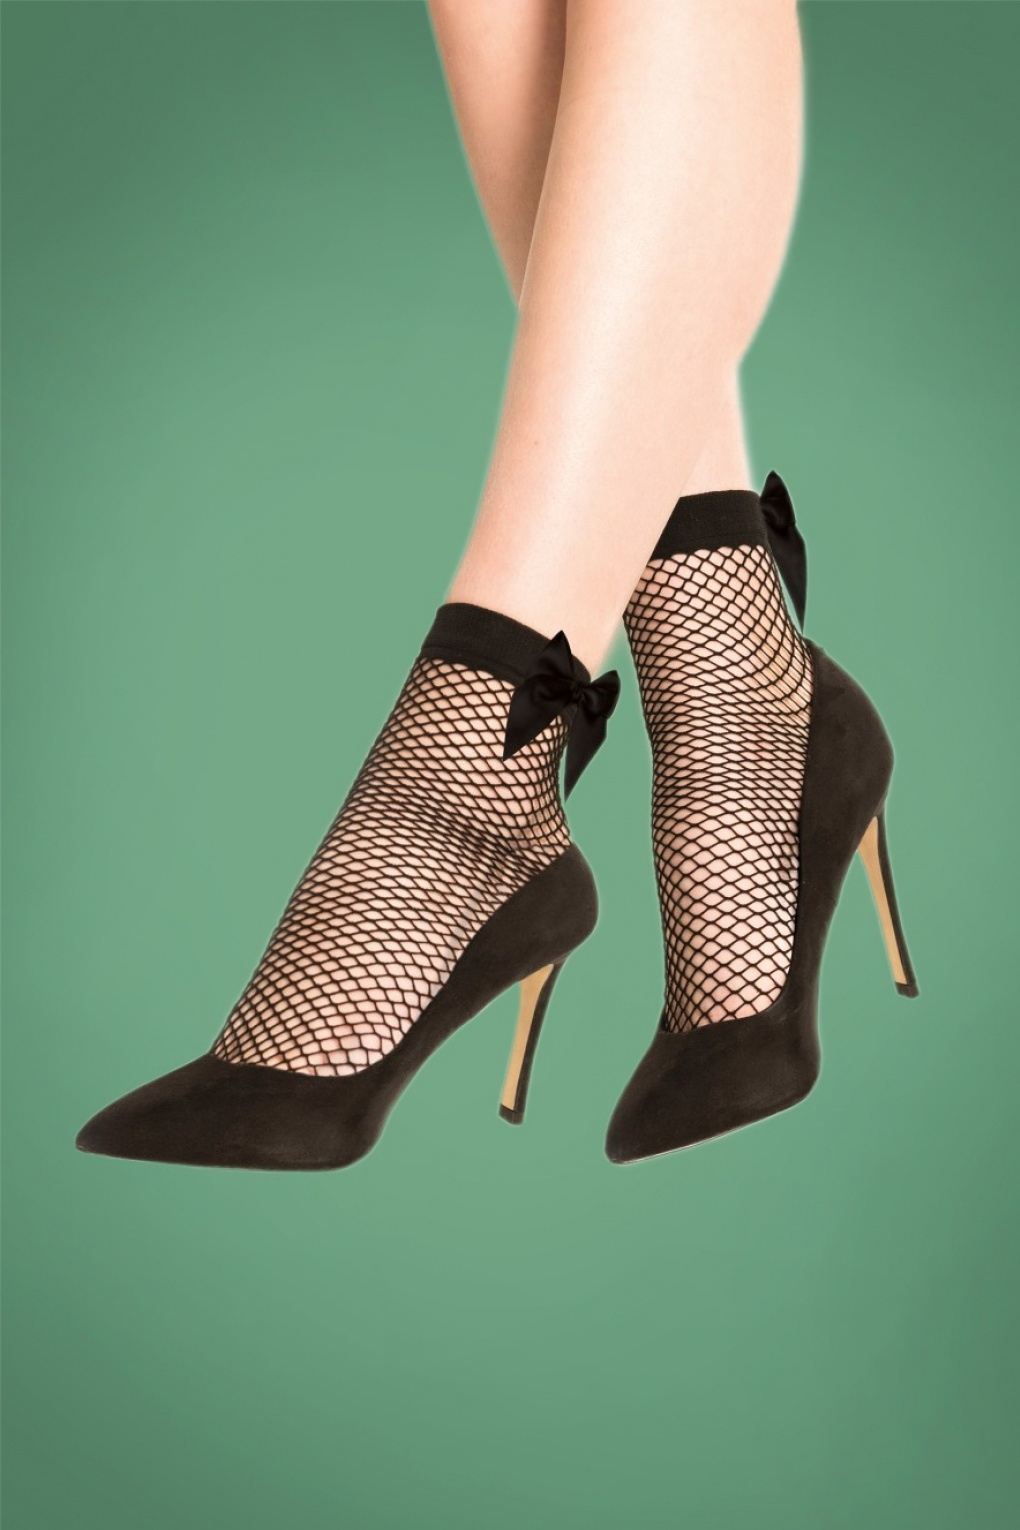 1950s Stockings and Nylons History & Shopping Guide 50s Bow Fishnet Socks in Black £7.08 AT vintagedancer.com